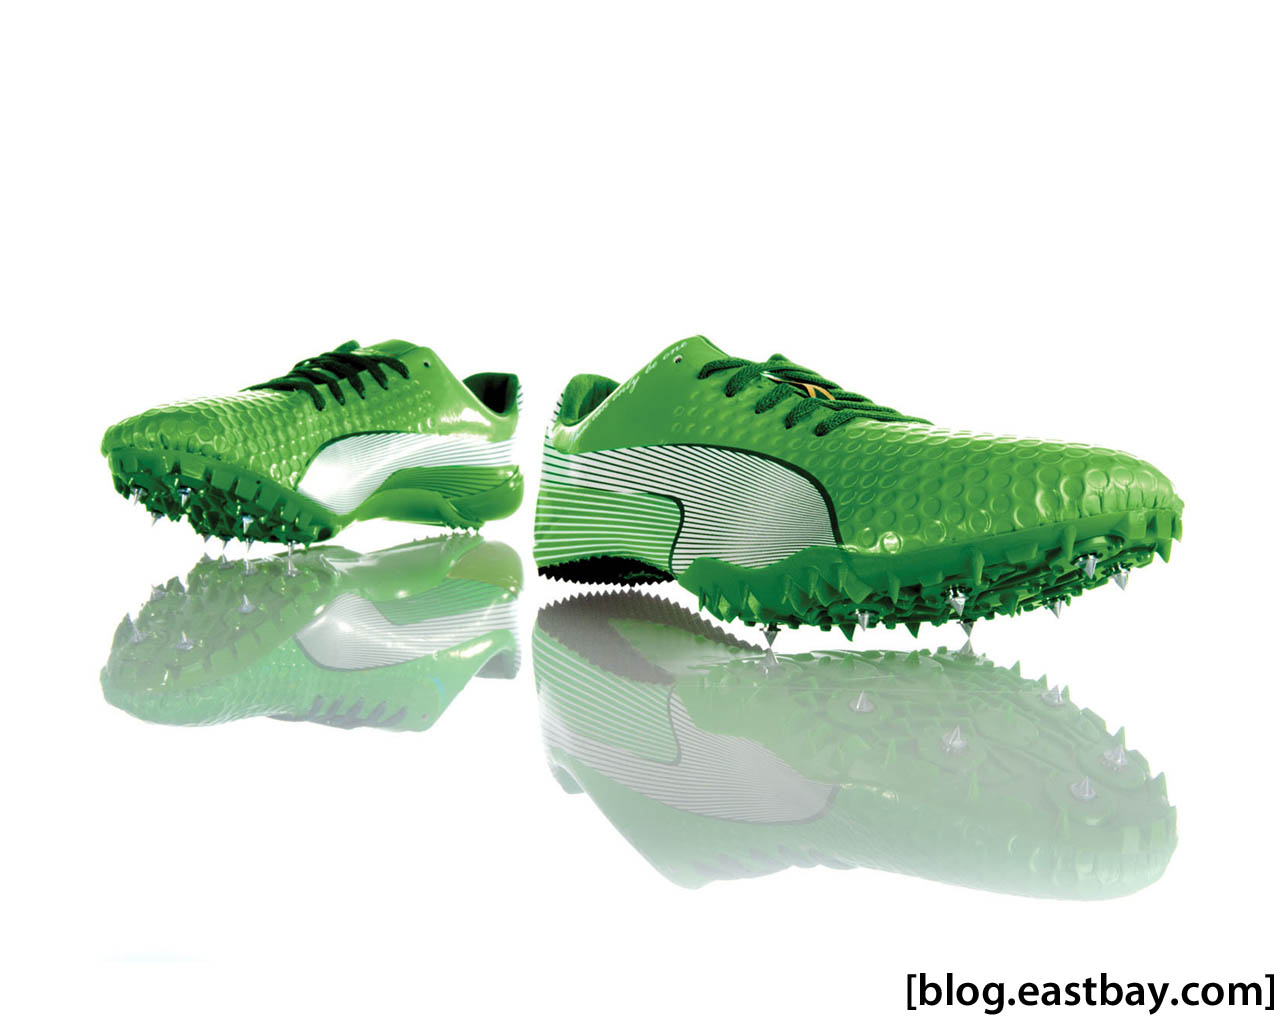 Wallpaper: Usain Bolt's New PUMA Faas 007 Spikes | Eastbay ...